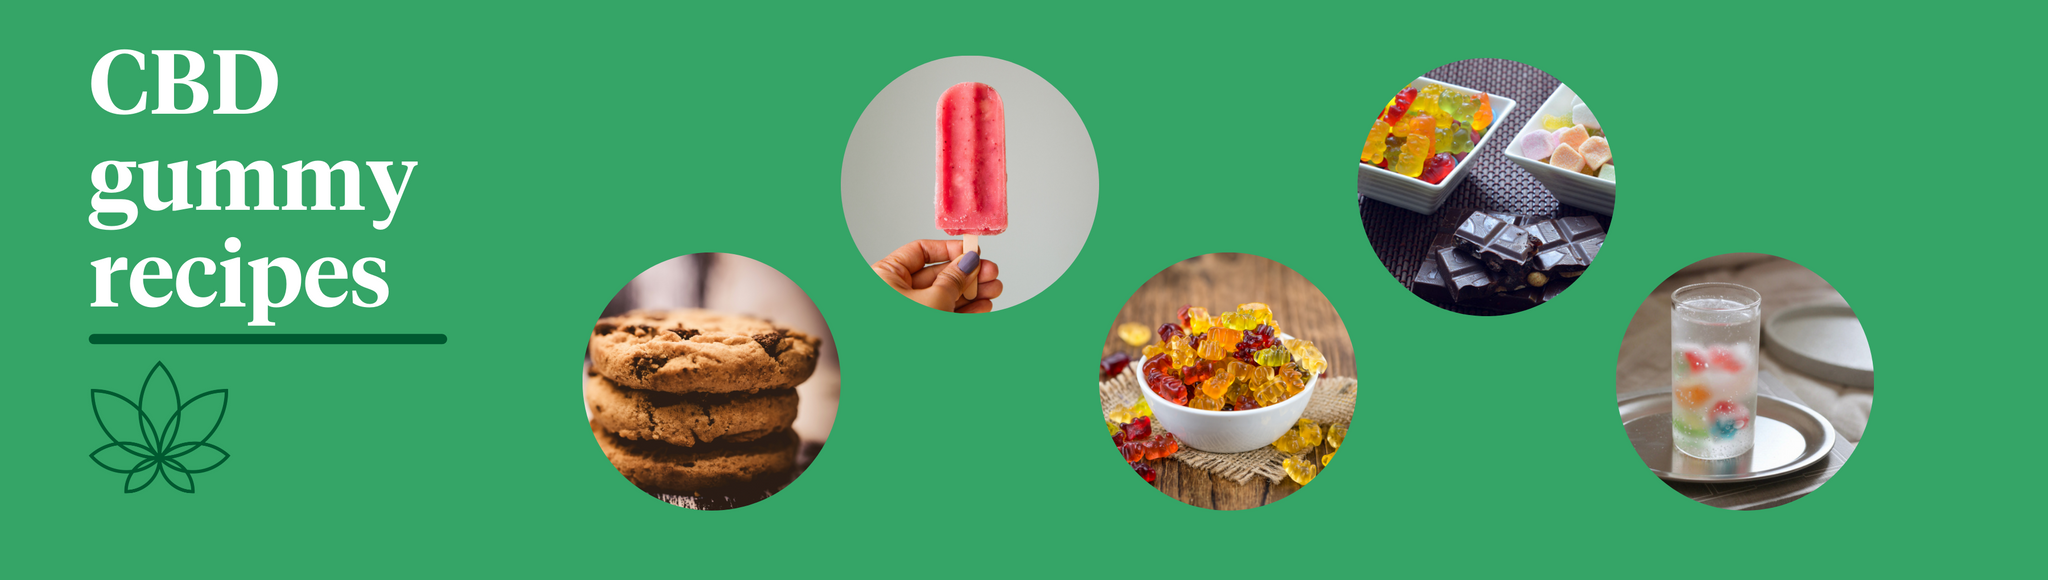 """A green background with the Supreme CBD logo with white text saying """"CBD gummy recipes"""" with 5 images of cookies, lolipops, drunken CBD gummies, chocolate CBD gummies and gummy icecubes."""